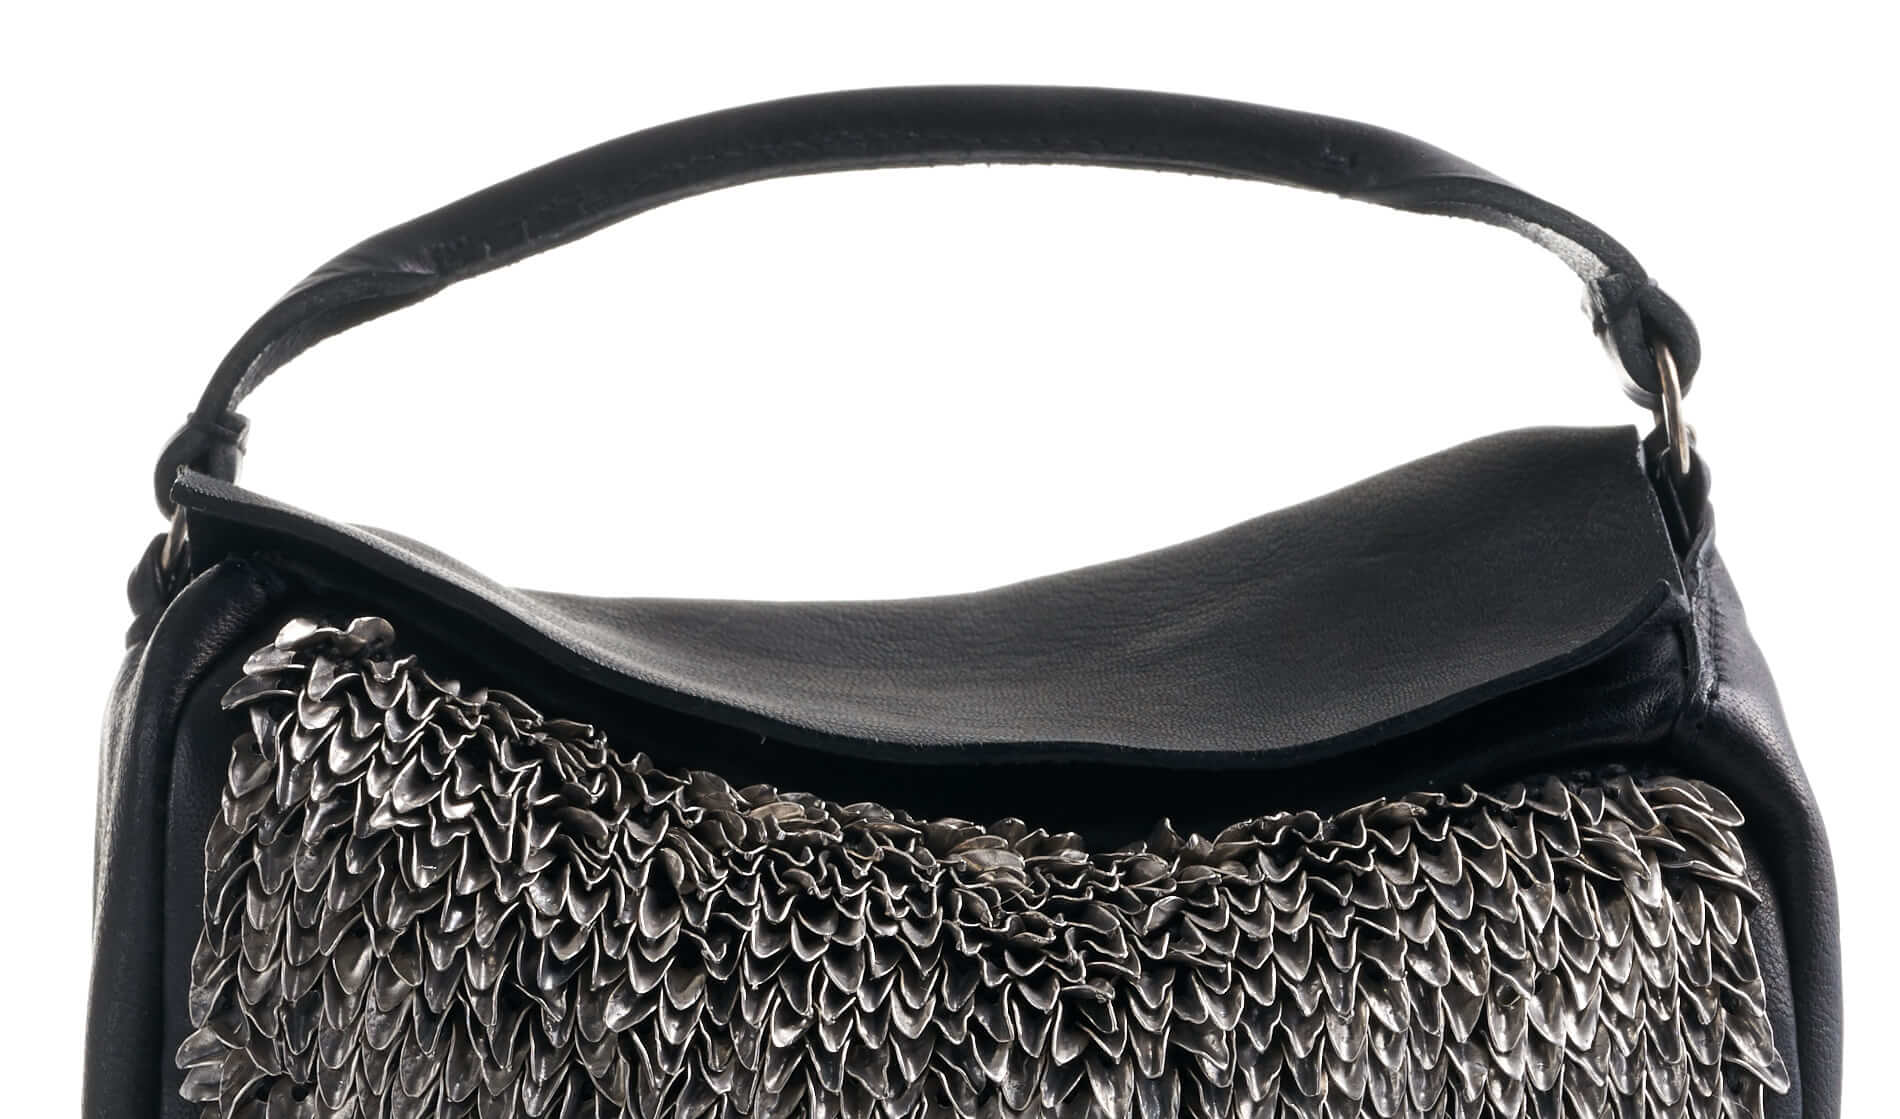 DANIELE BASTA | leather bag - BABA MIGNON FOGLIE detail